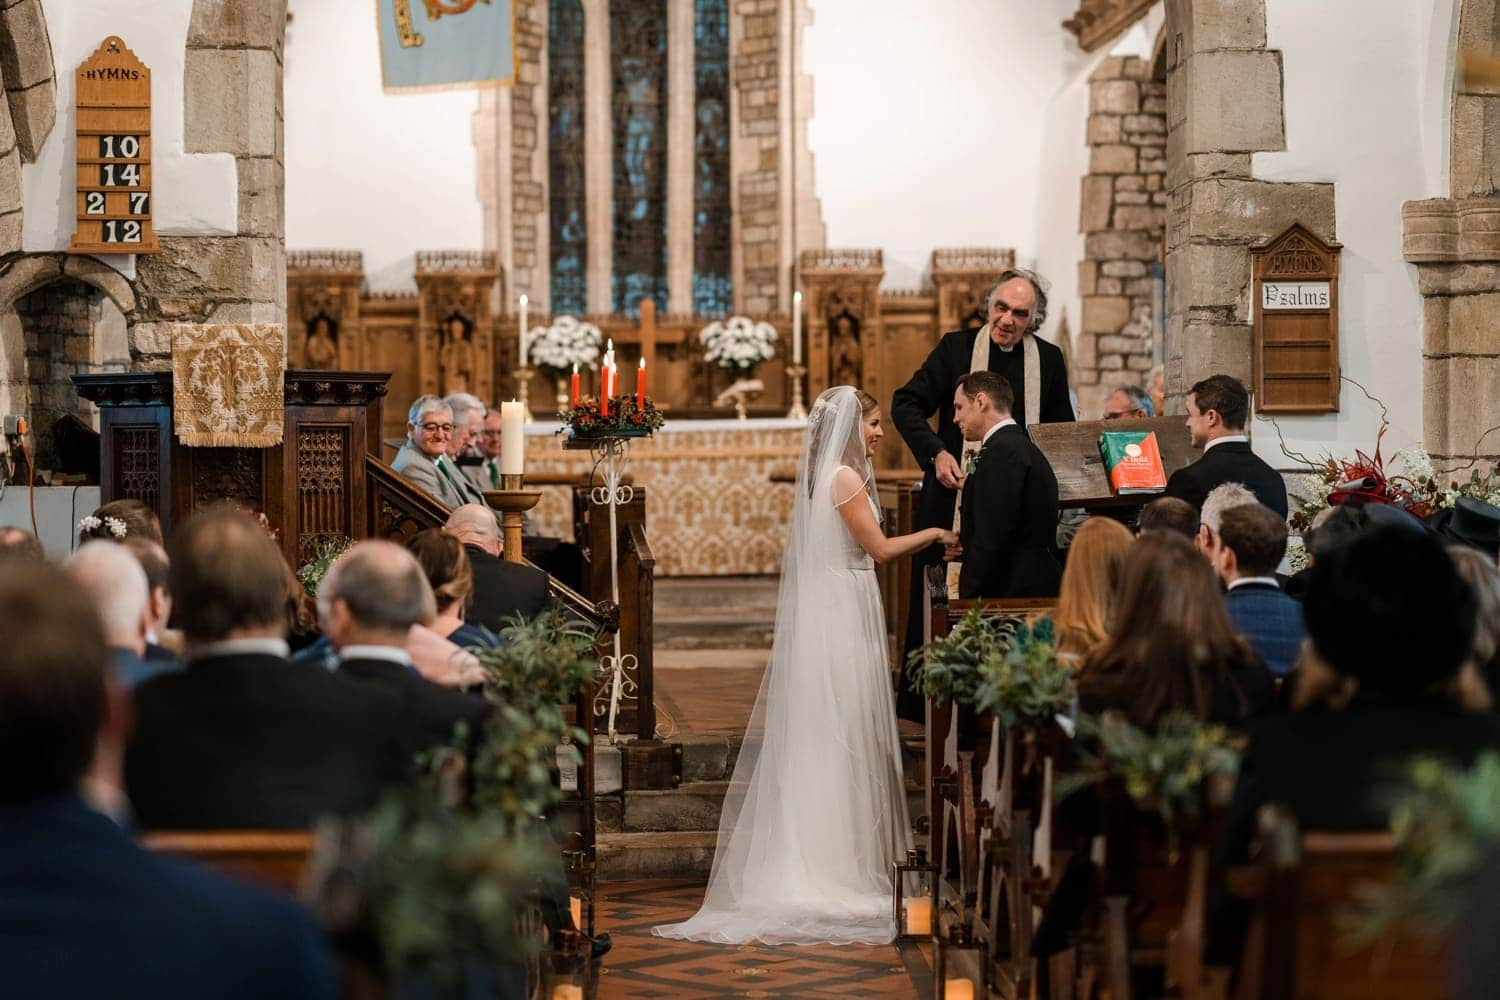 Marriage ceremony at St Tewdric's Church in Monmouthshire